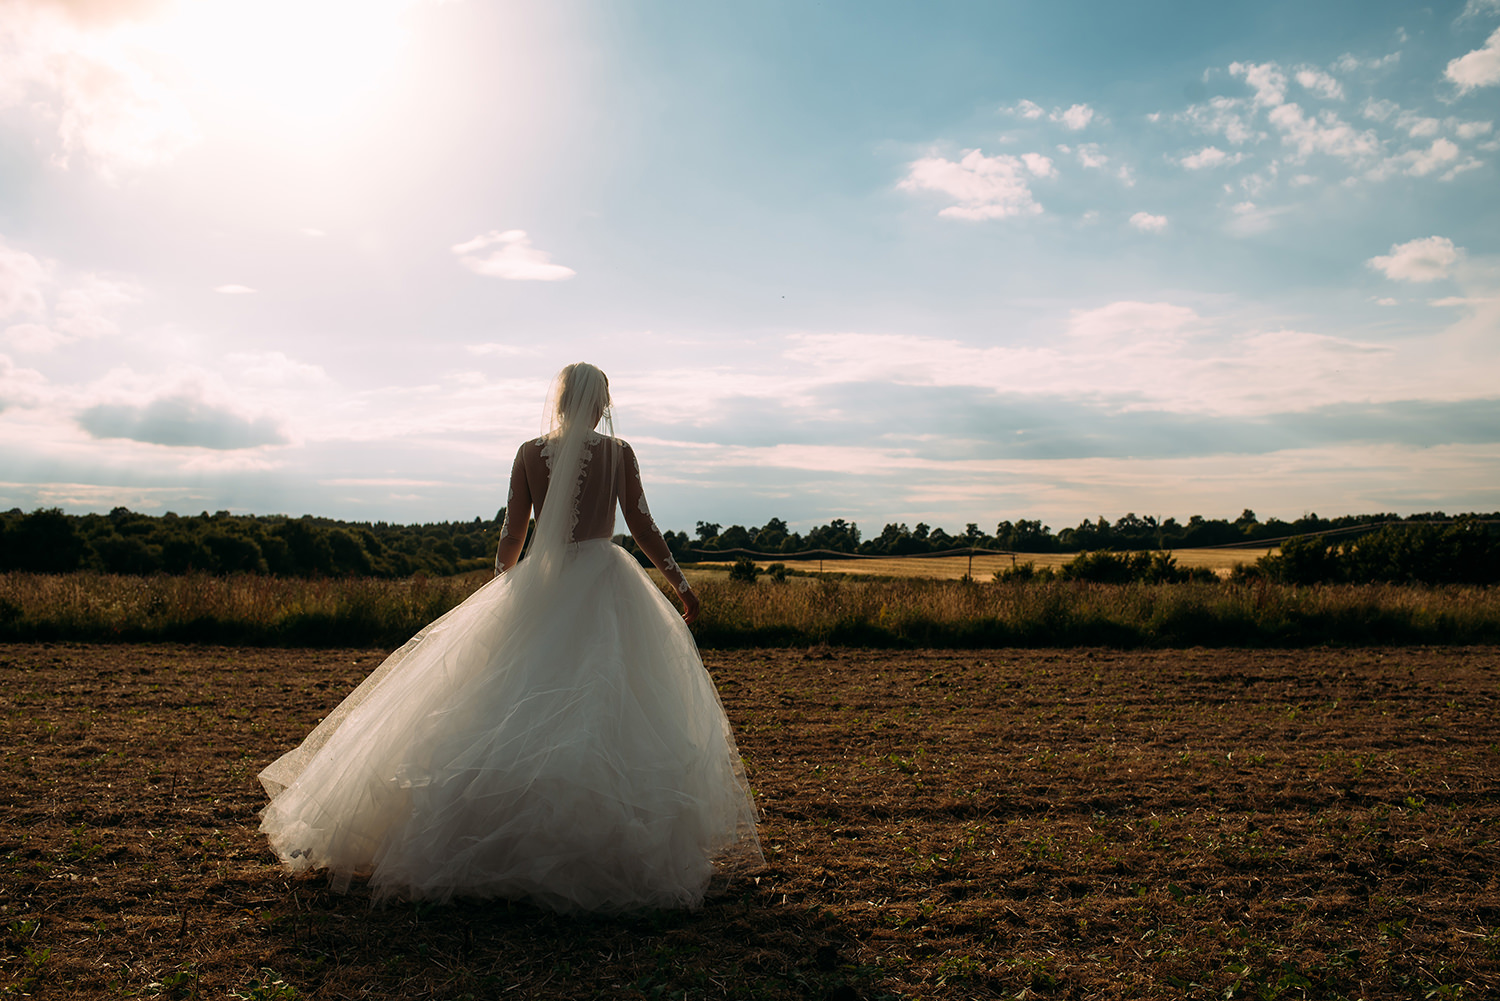 the bride walks into a field